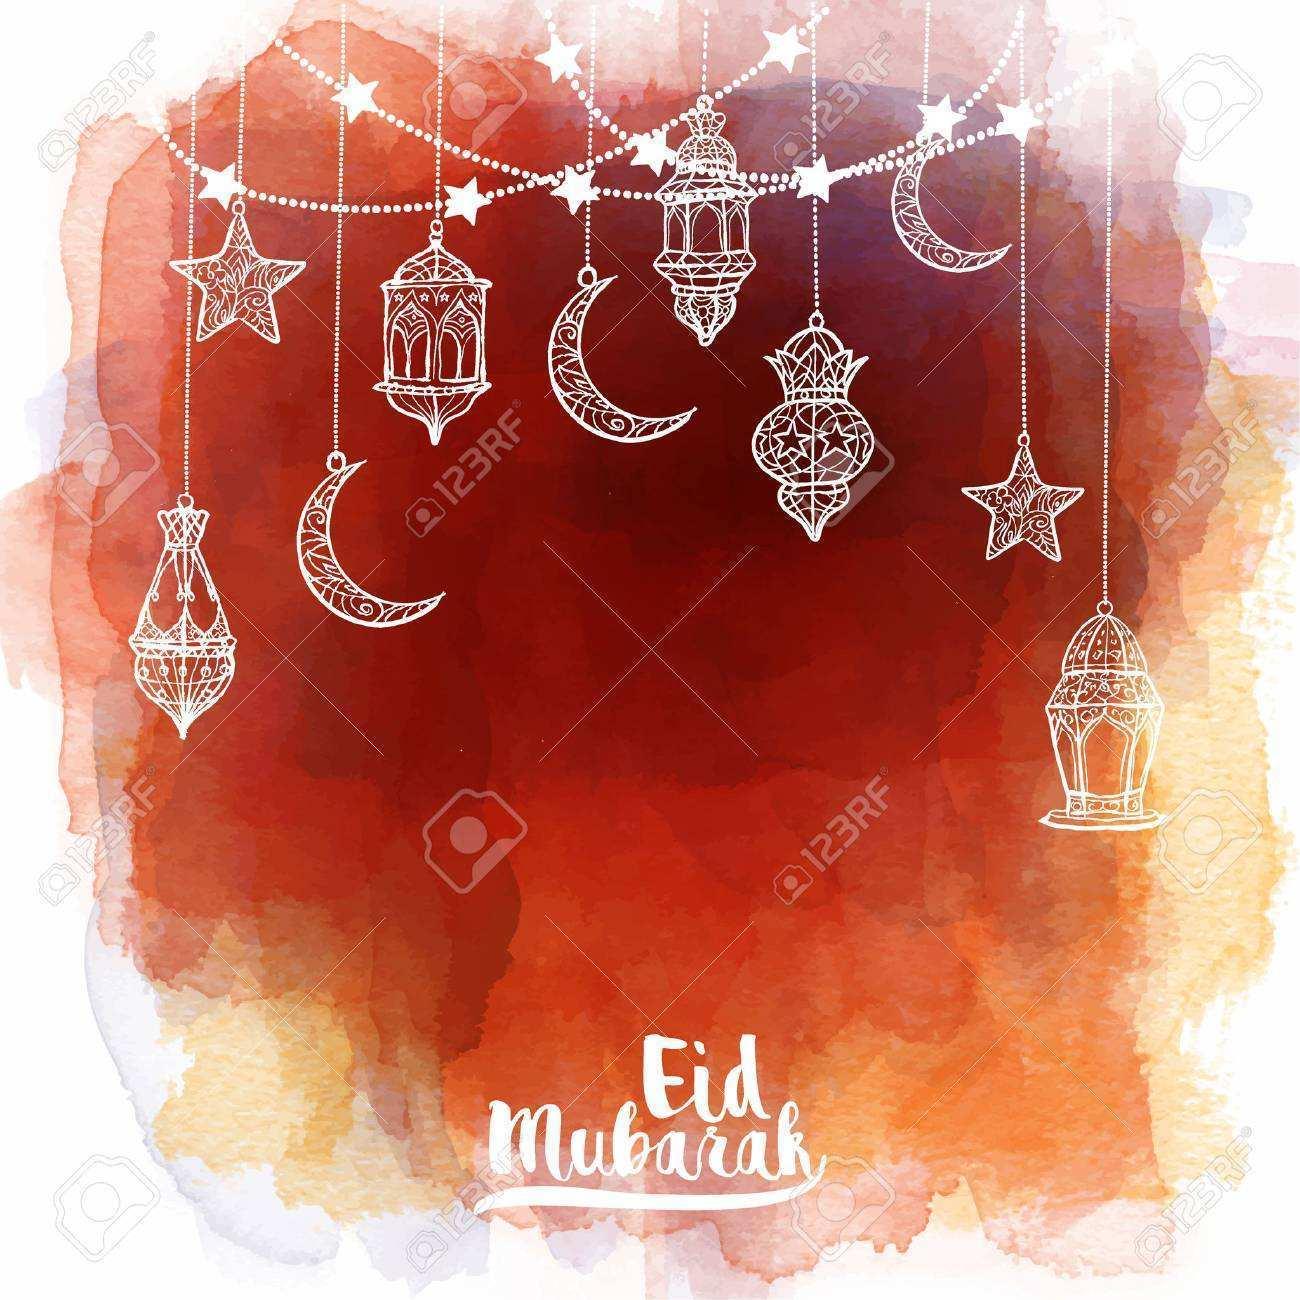 40 Report Eid Card Templates Vector For Free for Eid Card Templates Vector